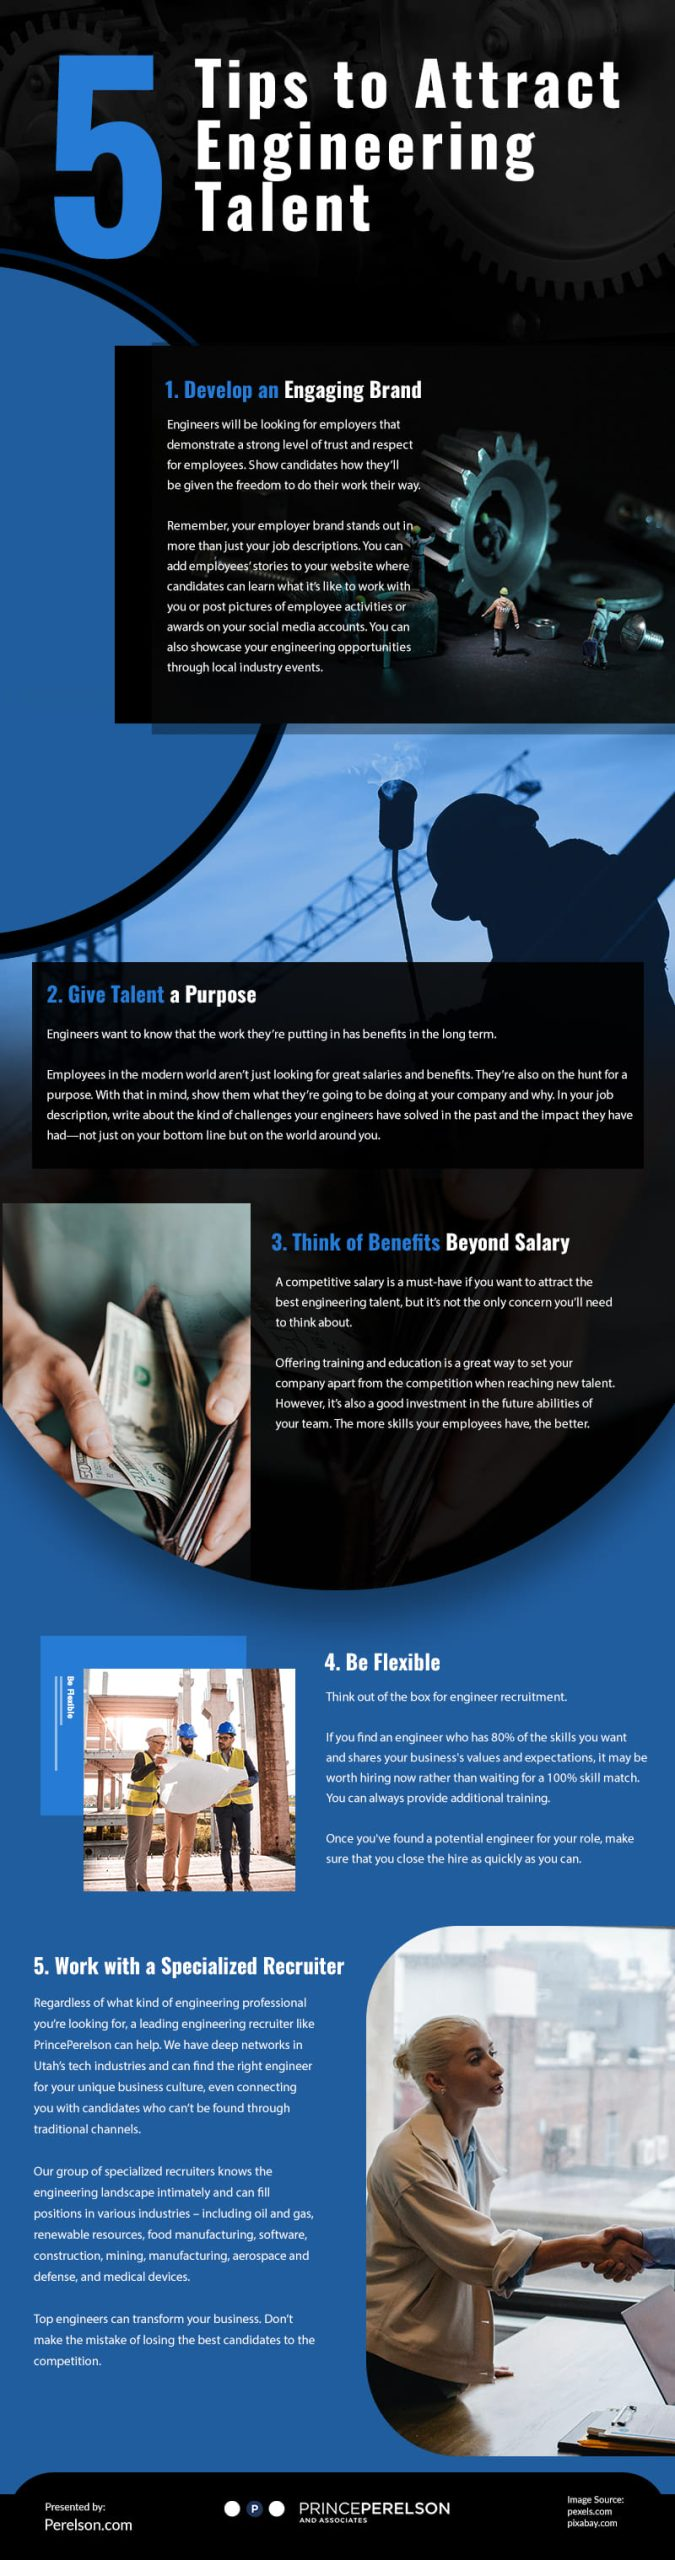 5 Tips to Attract Engineering Talent Infographic